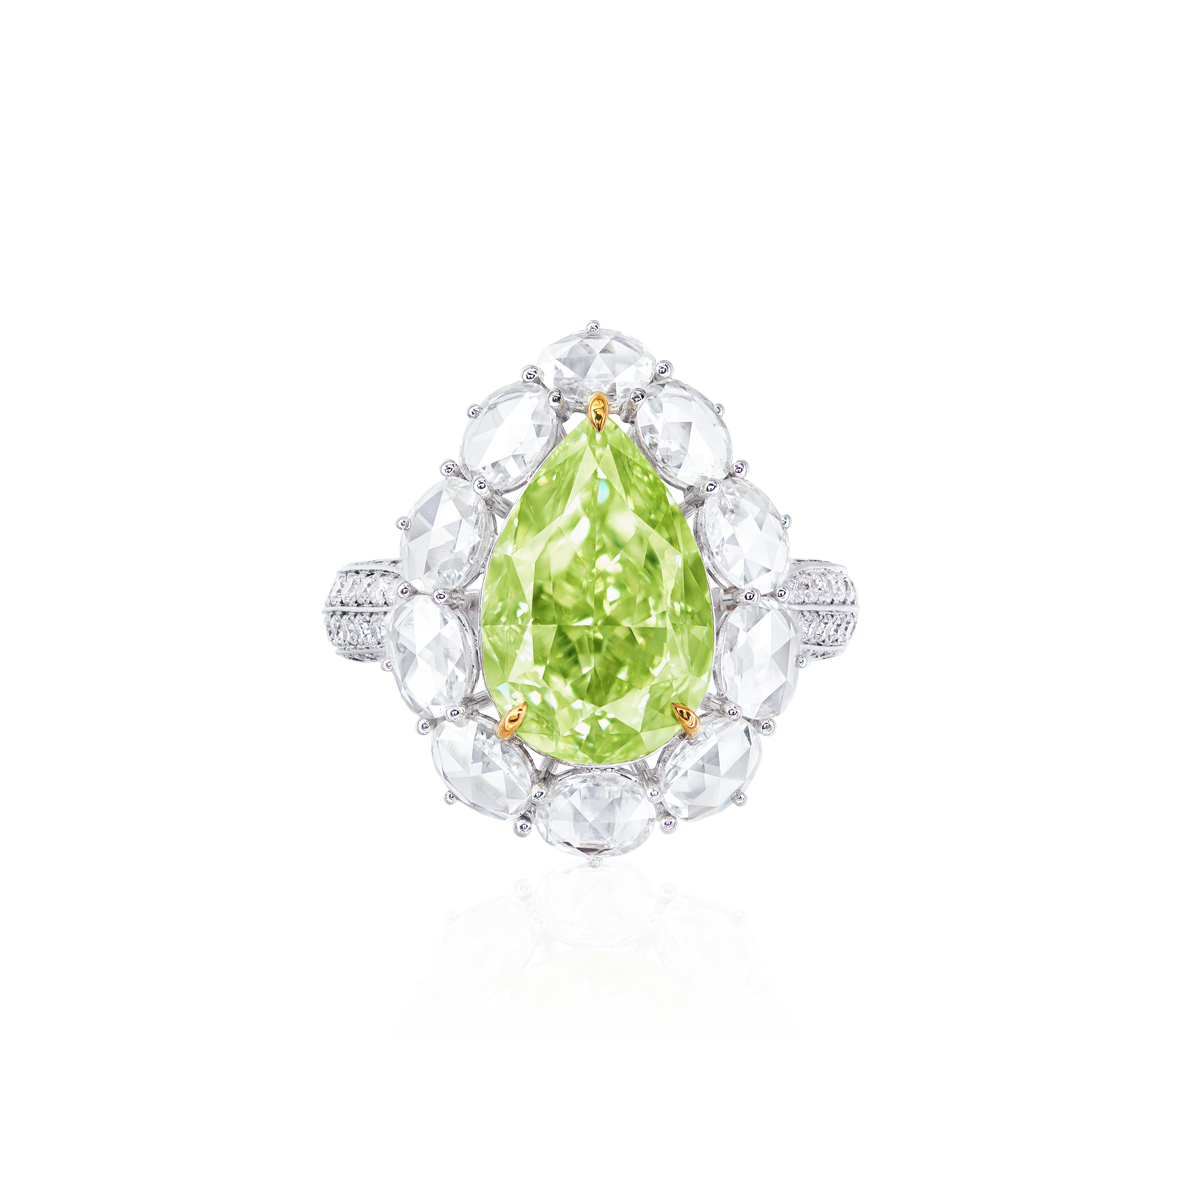 GIA 5.53 克拉黃綠鑽鑽戒